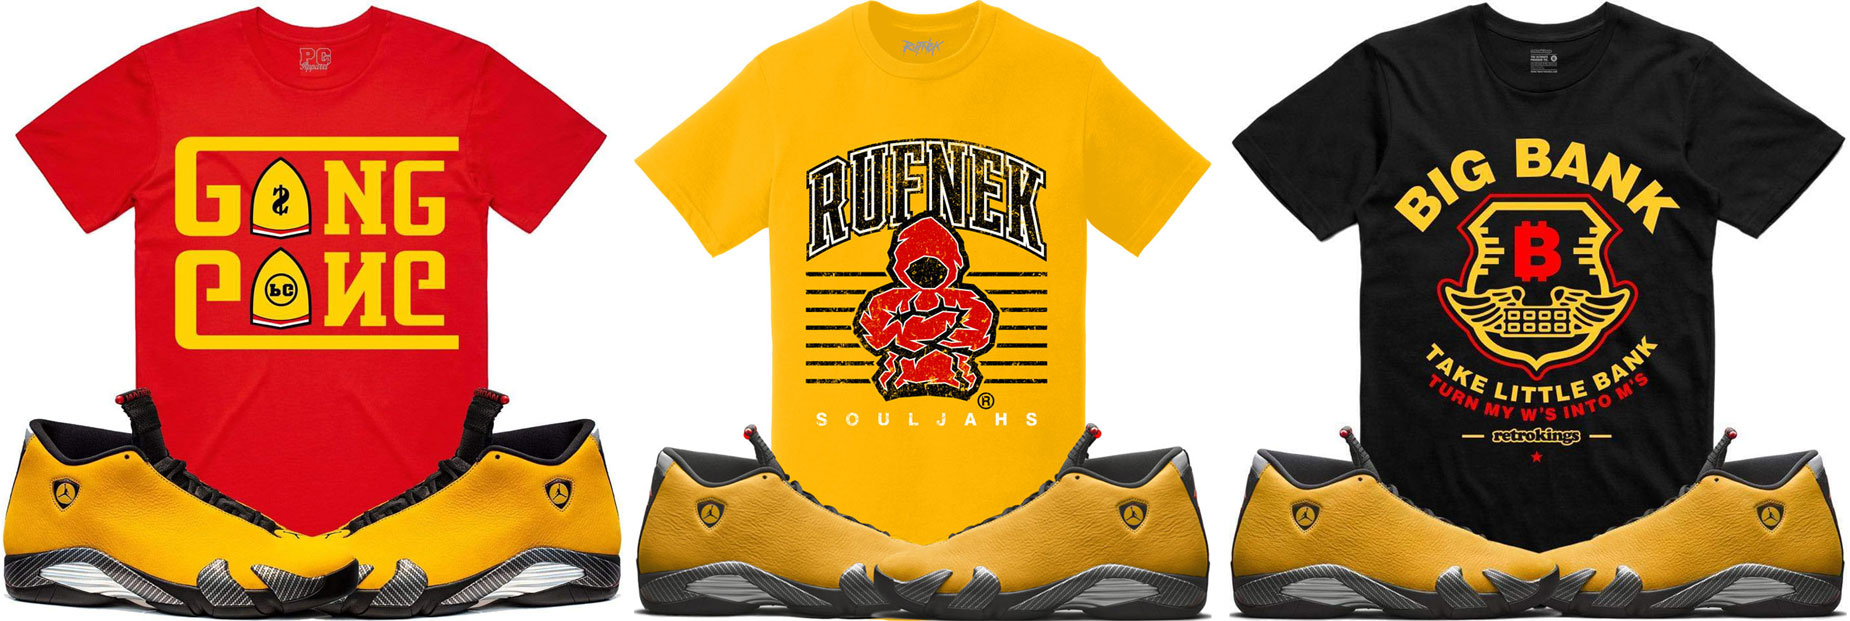 sneaker-tees-match-jordan-14-yellow-ferrari